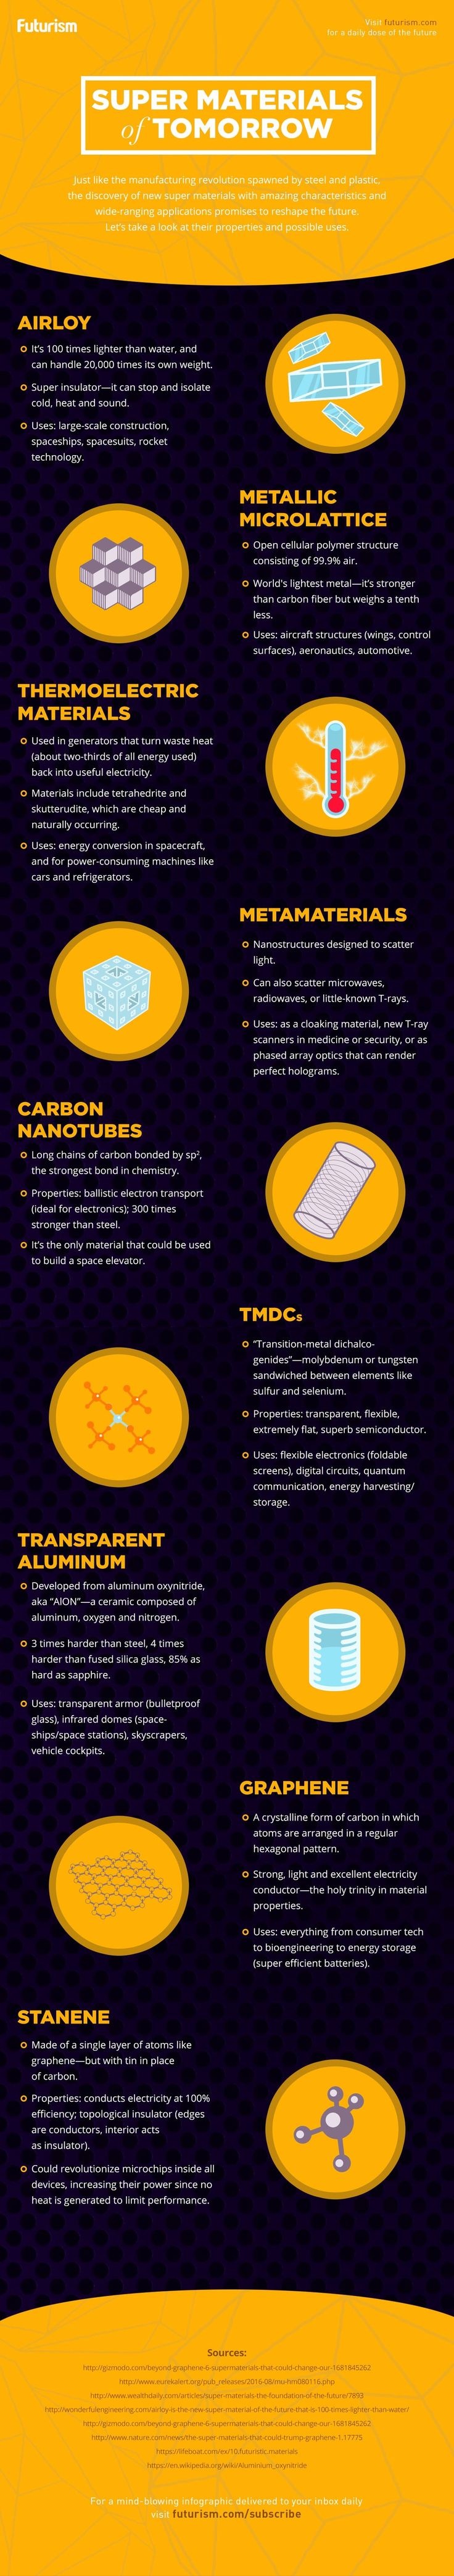 Scientists have discovered a whole array of new materials that promise to change the world.   Welcome to the Industrial Revolution 2.0.  http://futurism.com/images/super-materials-of-tomorrow-infograp (Future Tech Infographic)